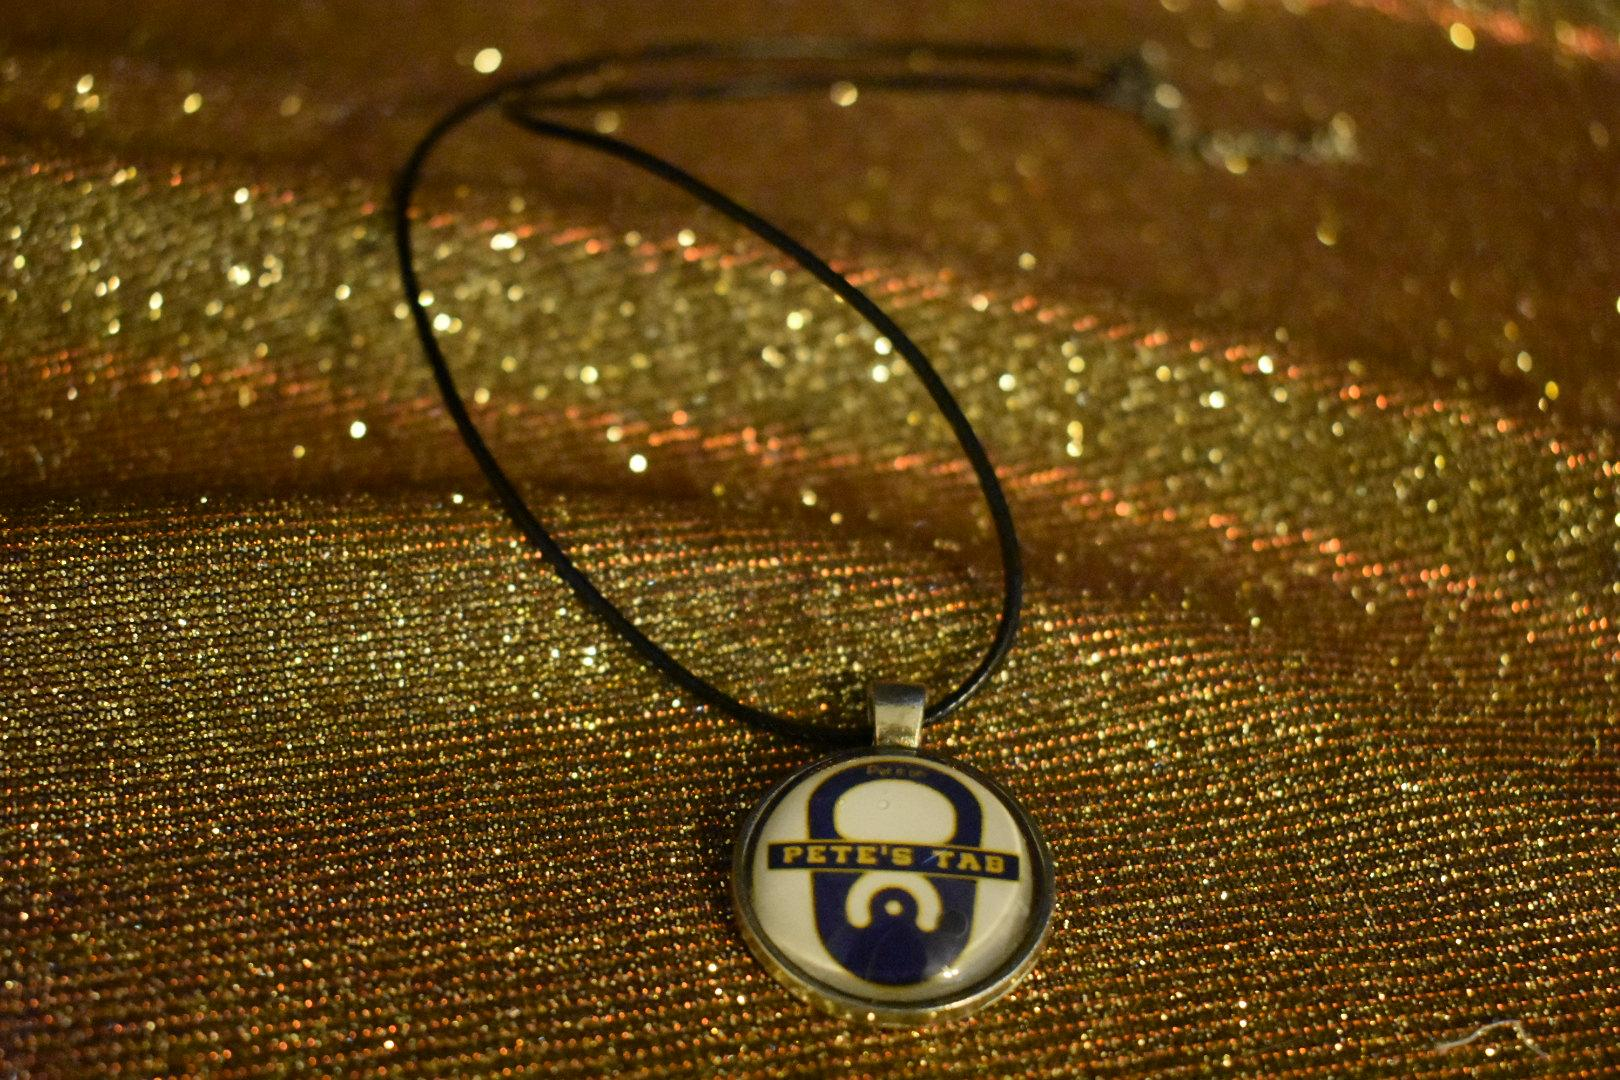 Pete's Tab necklace